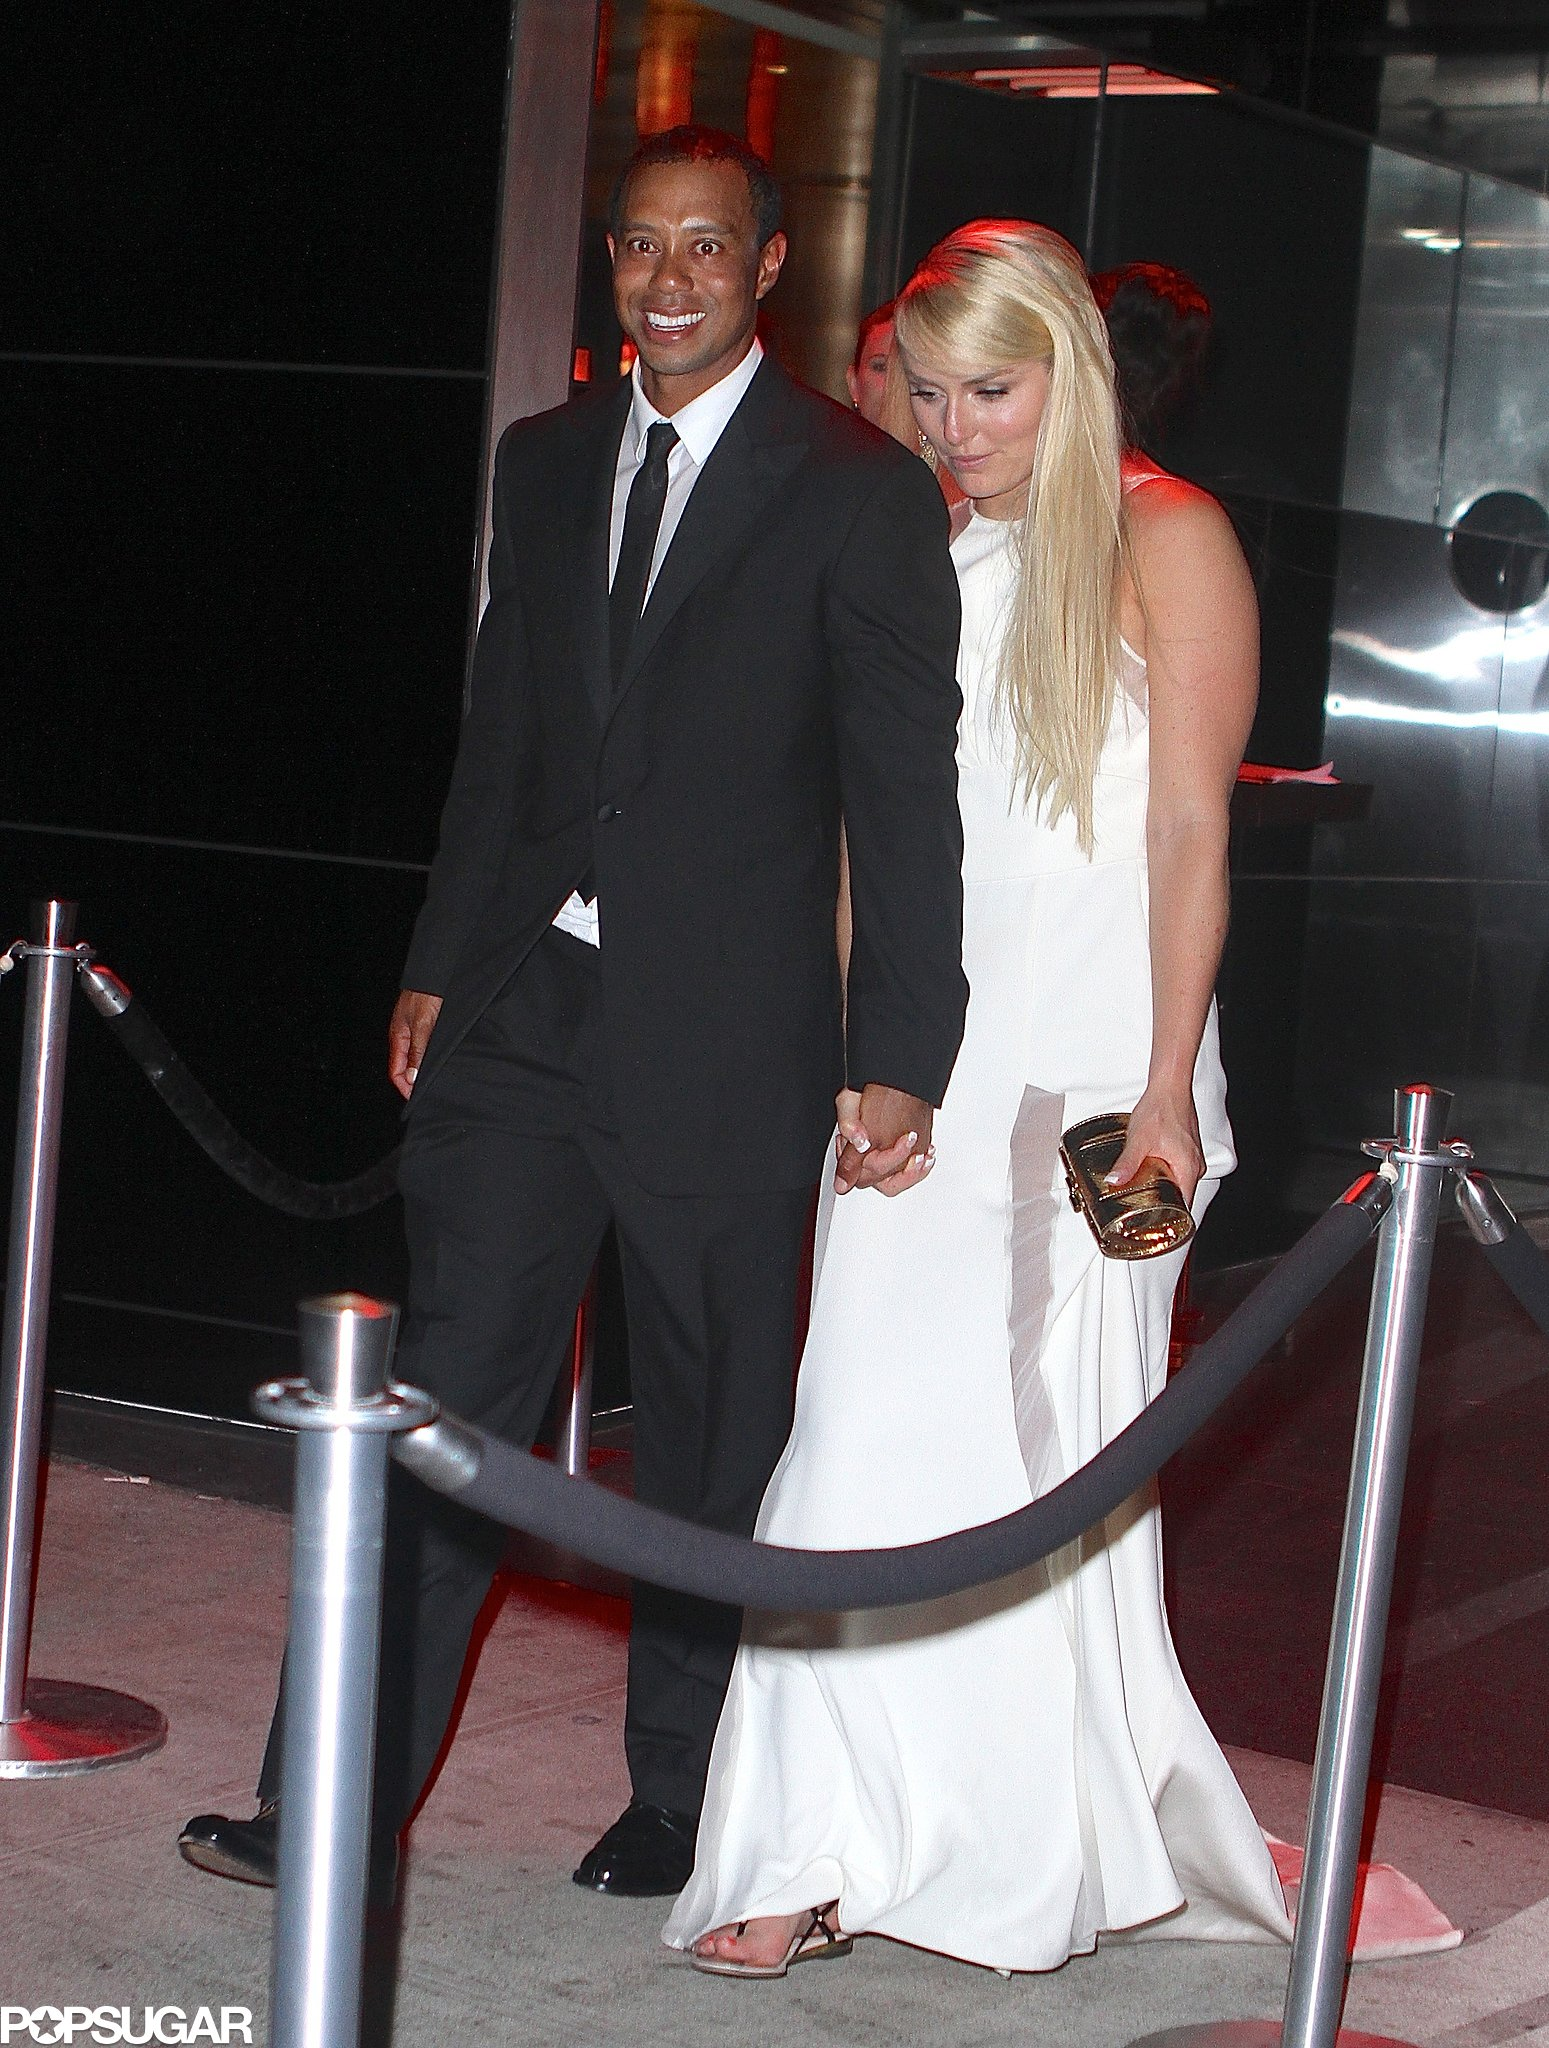 Lindsey Vonn and Tiger Woods were all smiles at the Met Gala    Lindsey Vonn Tiger Woods Yacht